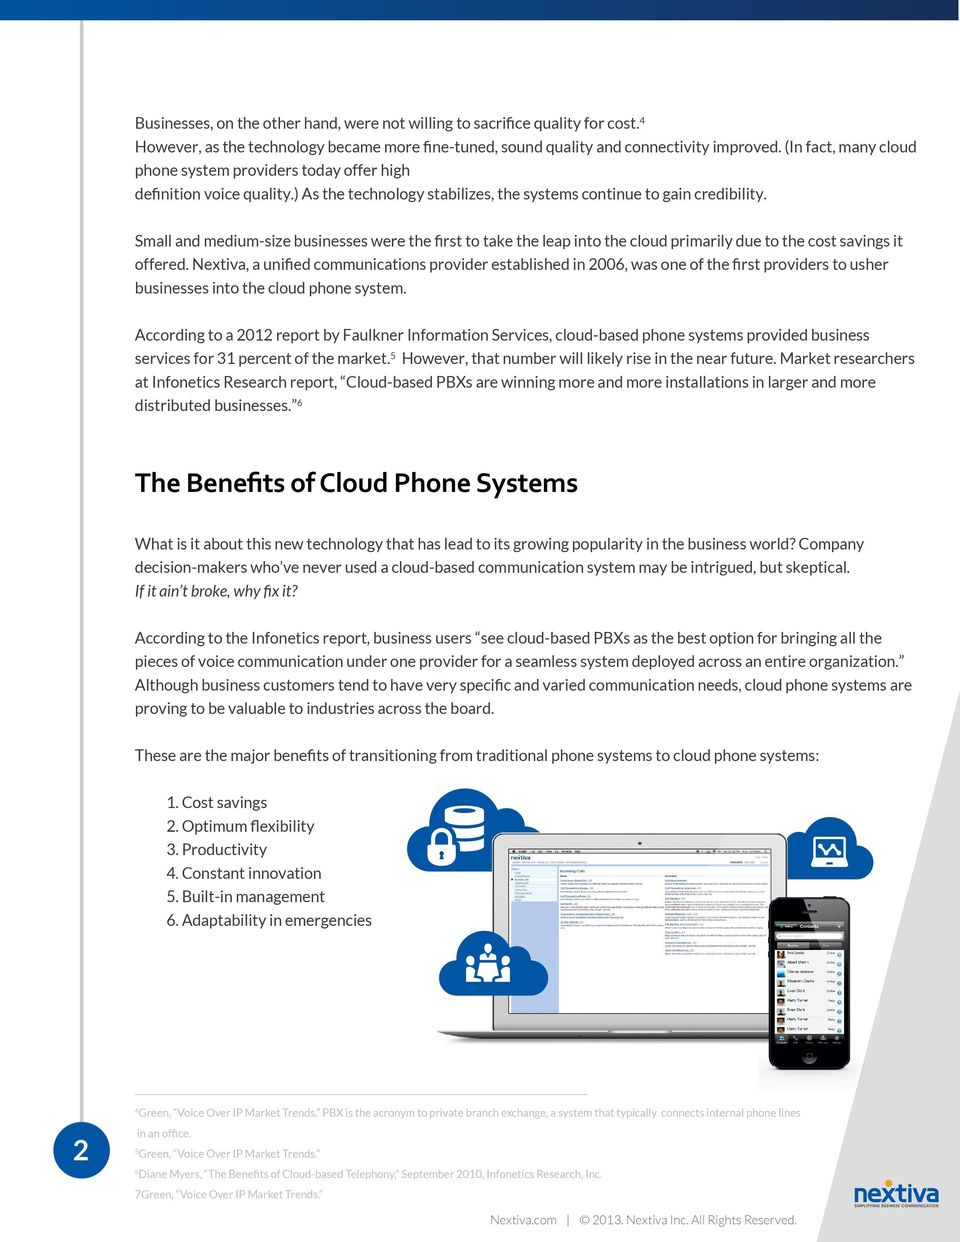 Small and medium-size businesses were the first to take the leap into the cloud primarily due to the cost savings it offered.